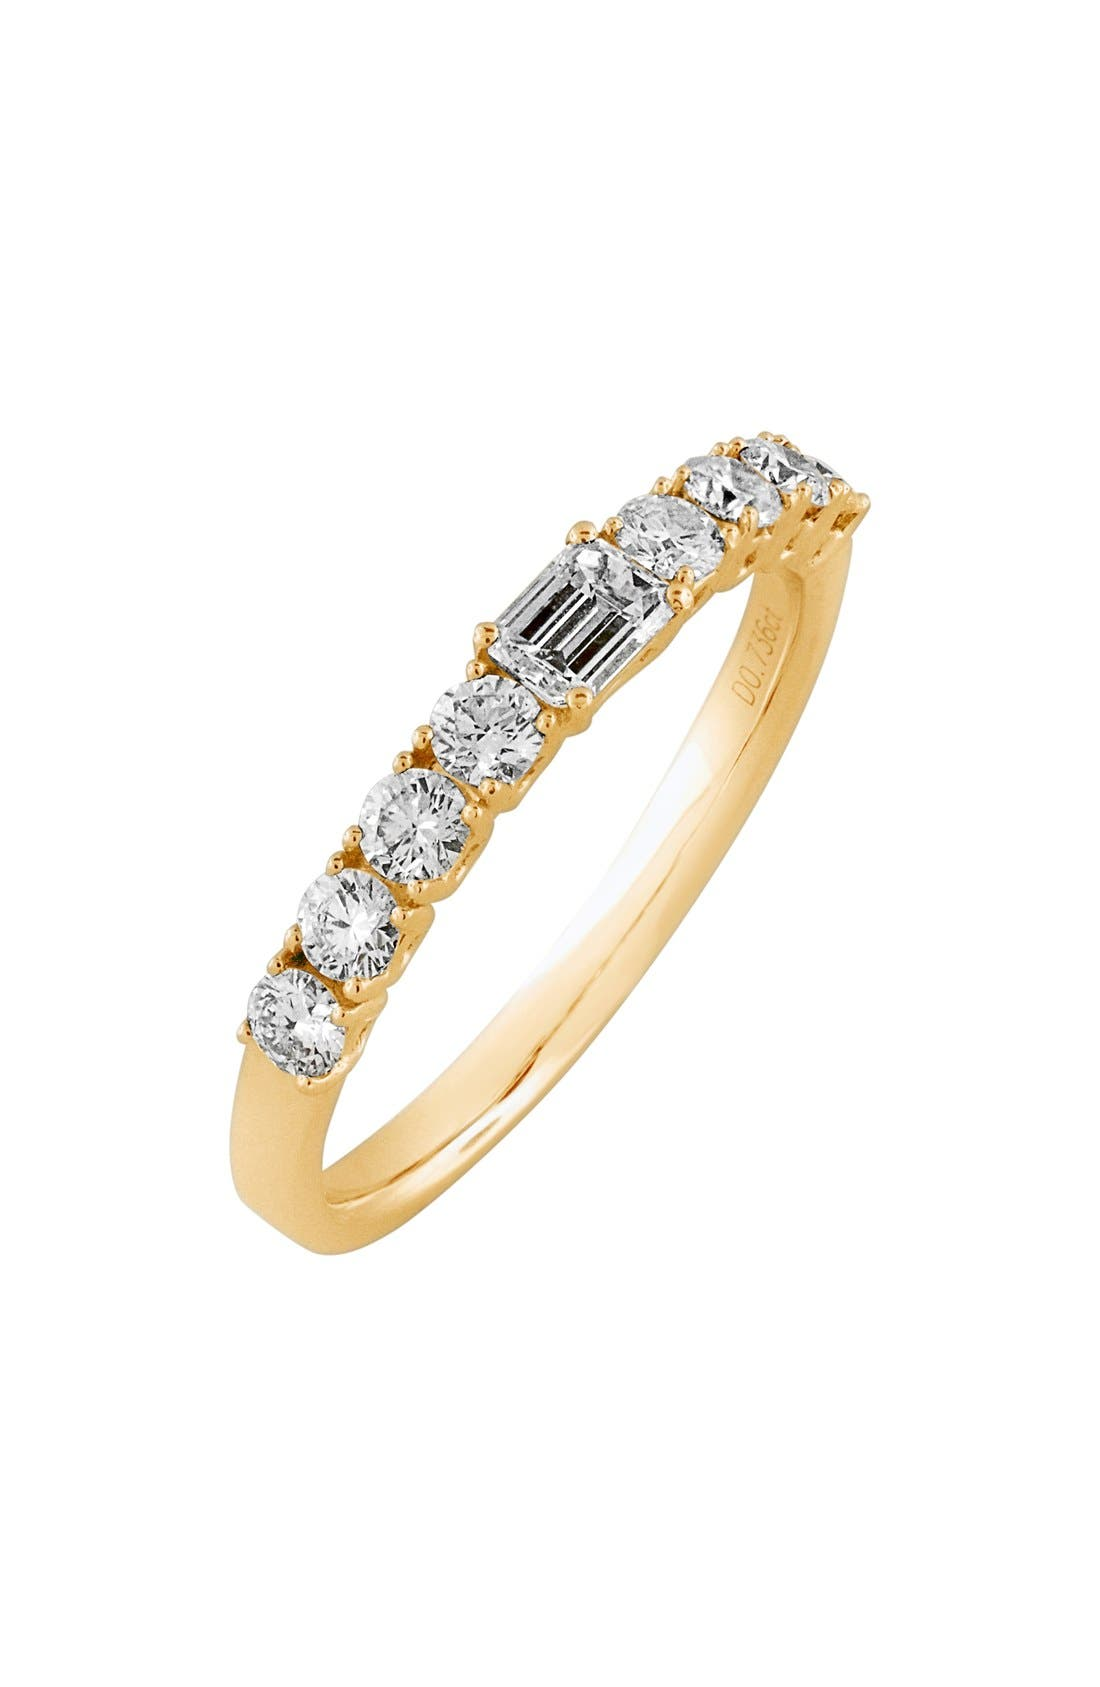 'Liora' Stackable Emerald Cut Diamond Ring,                             Main thumbnail 1, color,                             YELLOW GOLD